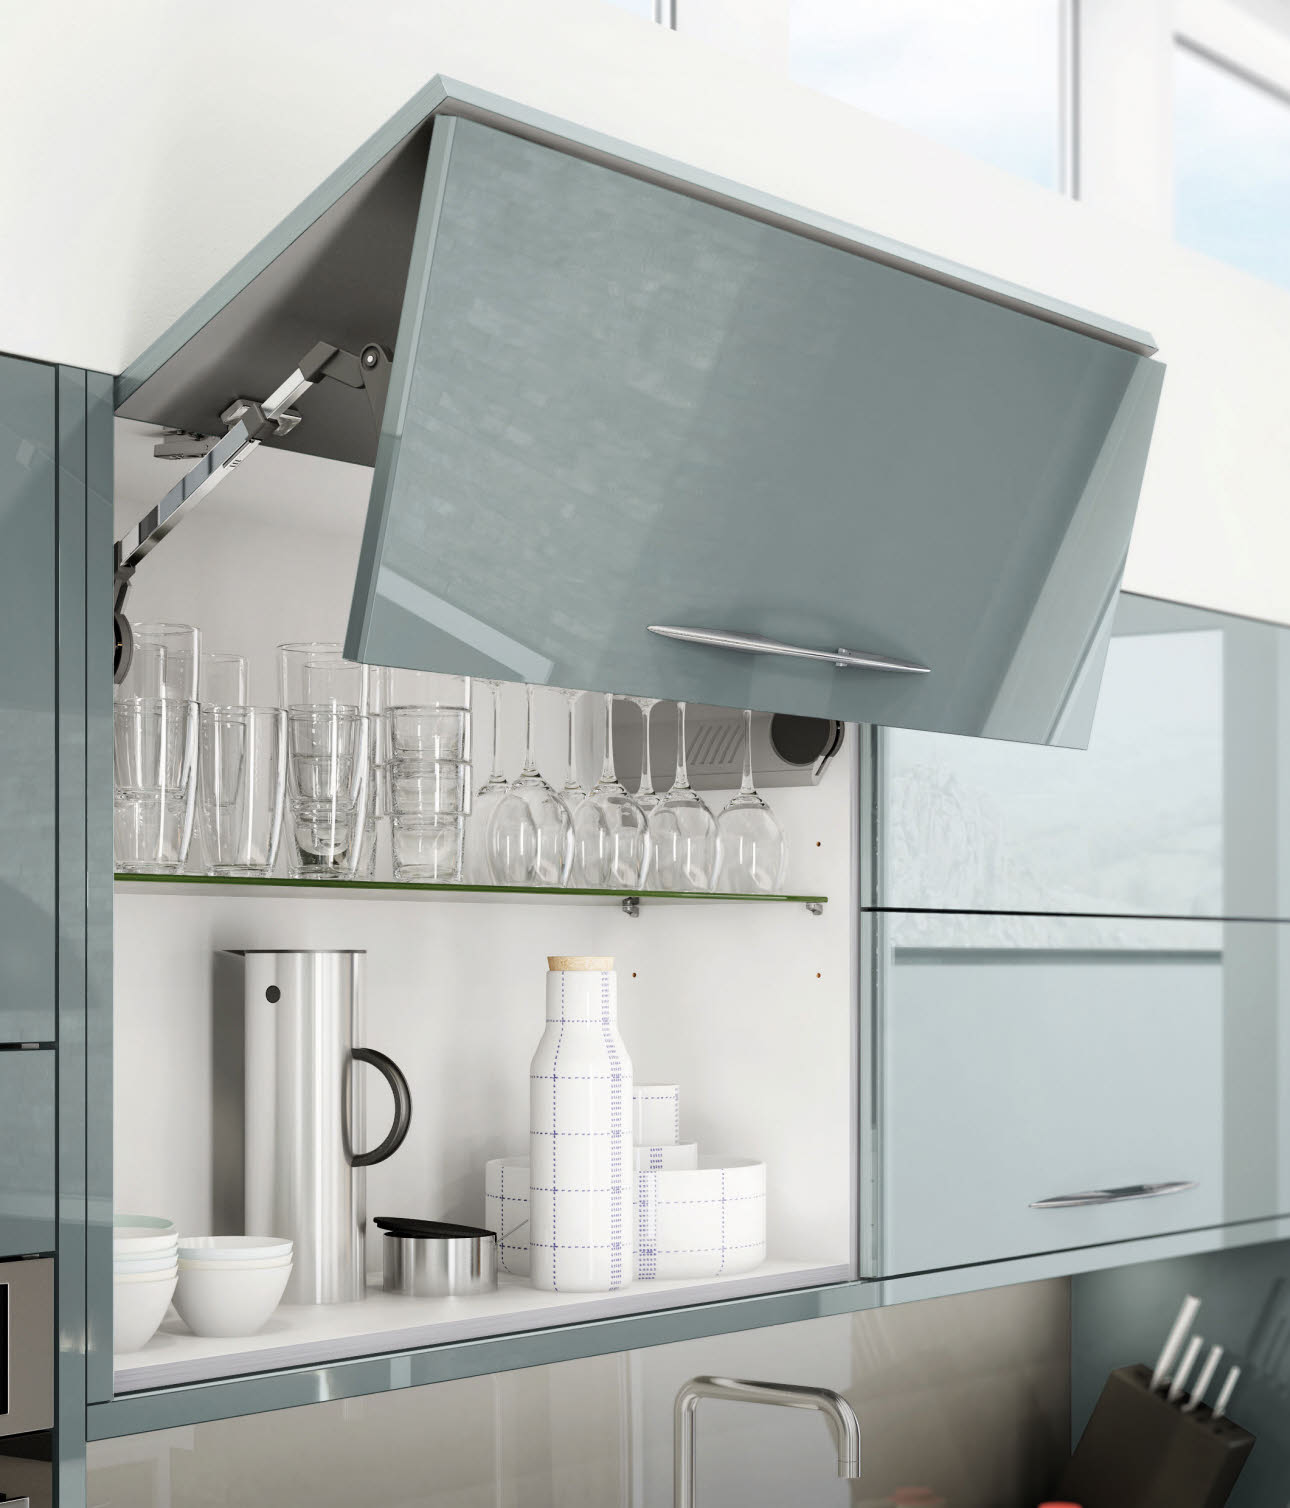 Fusion Blue kitchen wall cupboard, lift up door open revealing glasses